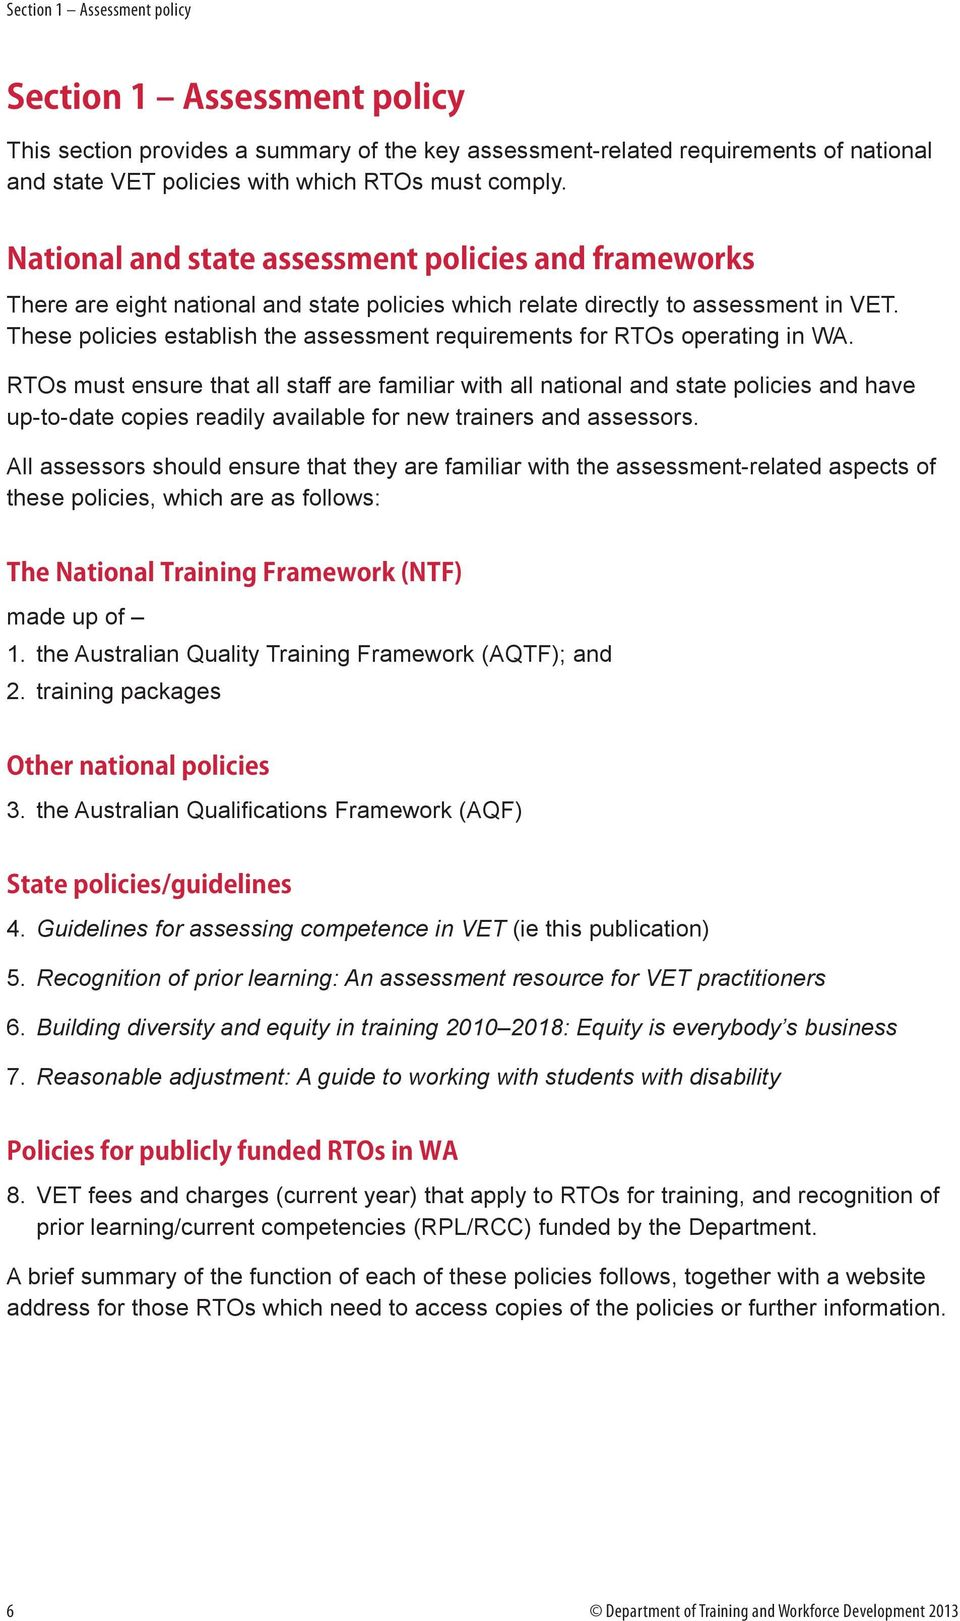 These policies establish the assessment requirements for RTOs operating in WA.